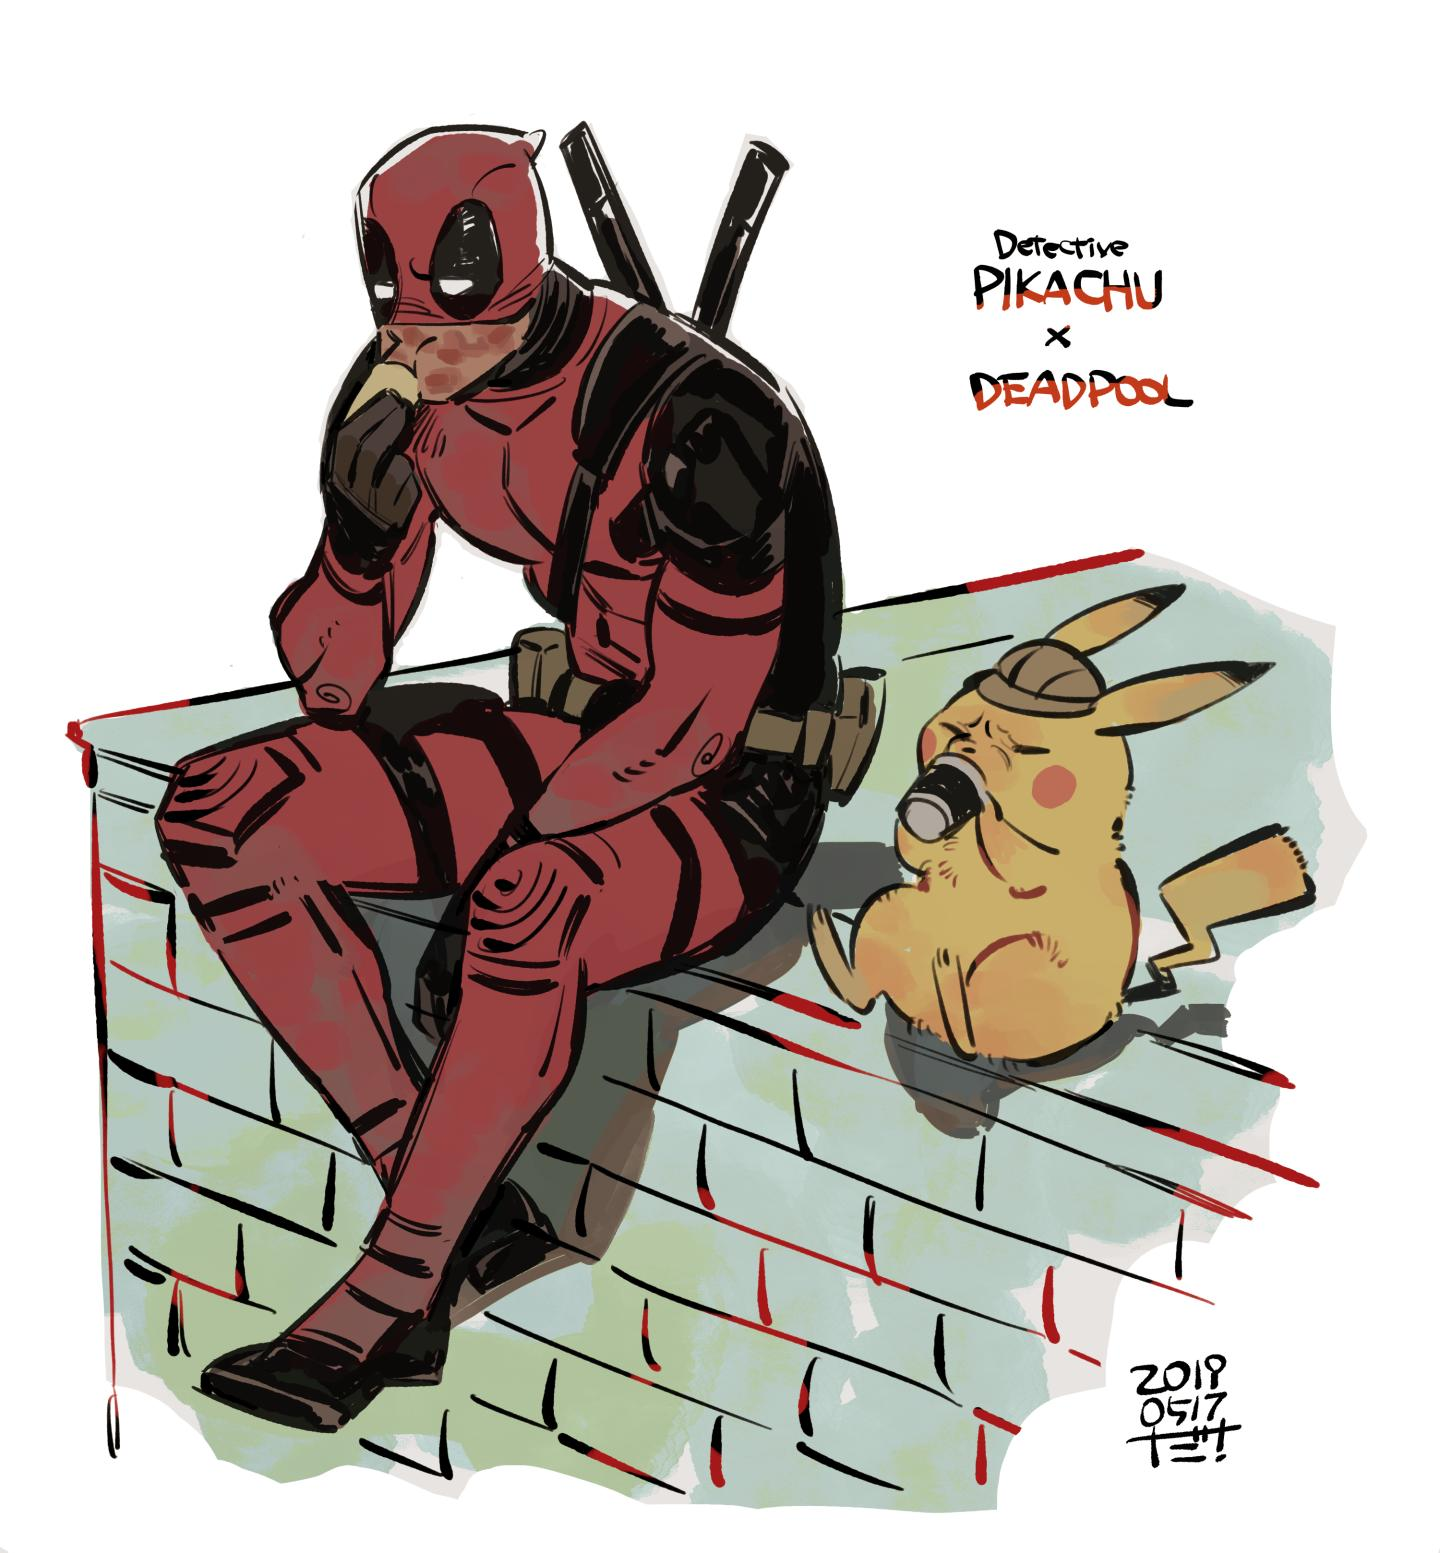 1boy 1other animal artist_name belt black_footwear black_gloves blush_stickers bodysuit boots brown_headwear building character_name closed_eyes commentary creatures_(company) cup dam_(okdam3) dated deadpool deerstalker detective_pikachu detective_pikachu_(series) disney drinking eating food game_freak gen_1_pokemon gloves hat highres holding holding_cup holding_food leaning_forward long_sleeves marvel mask_up mouse nintendo pikachu pokemon pokemon_(creature) red_bodysuit ryan_reynolds seiyuu_connection shadow signature sitting superhero sword utility_belt voice_actor_connection warner_bros weapon